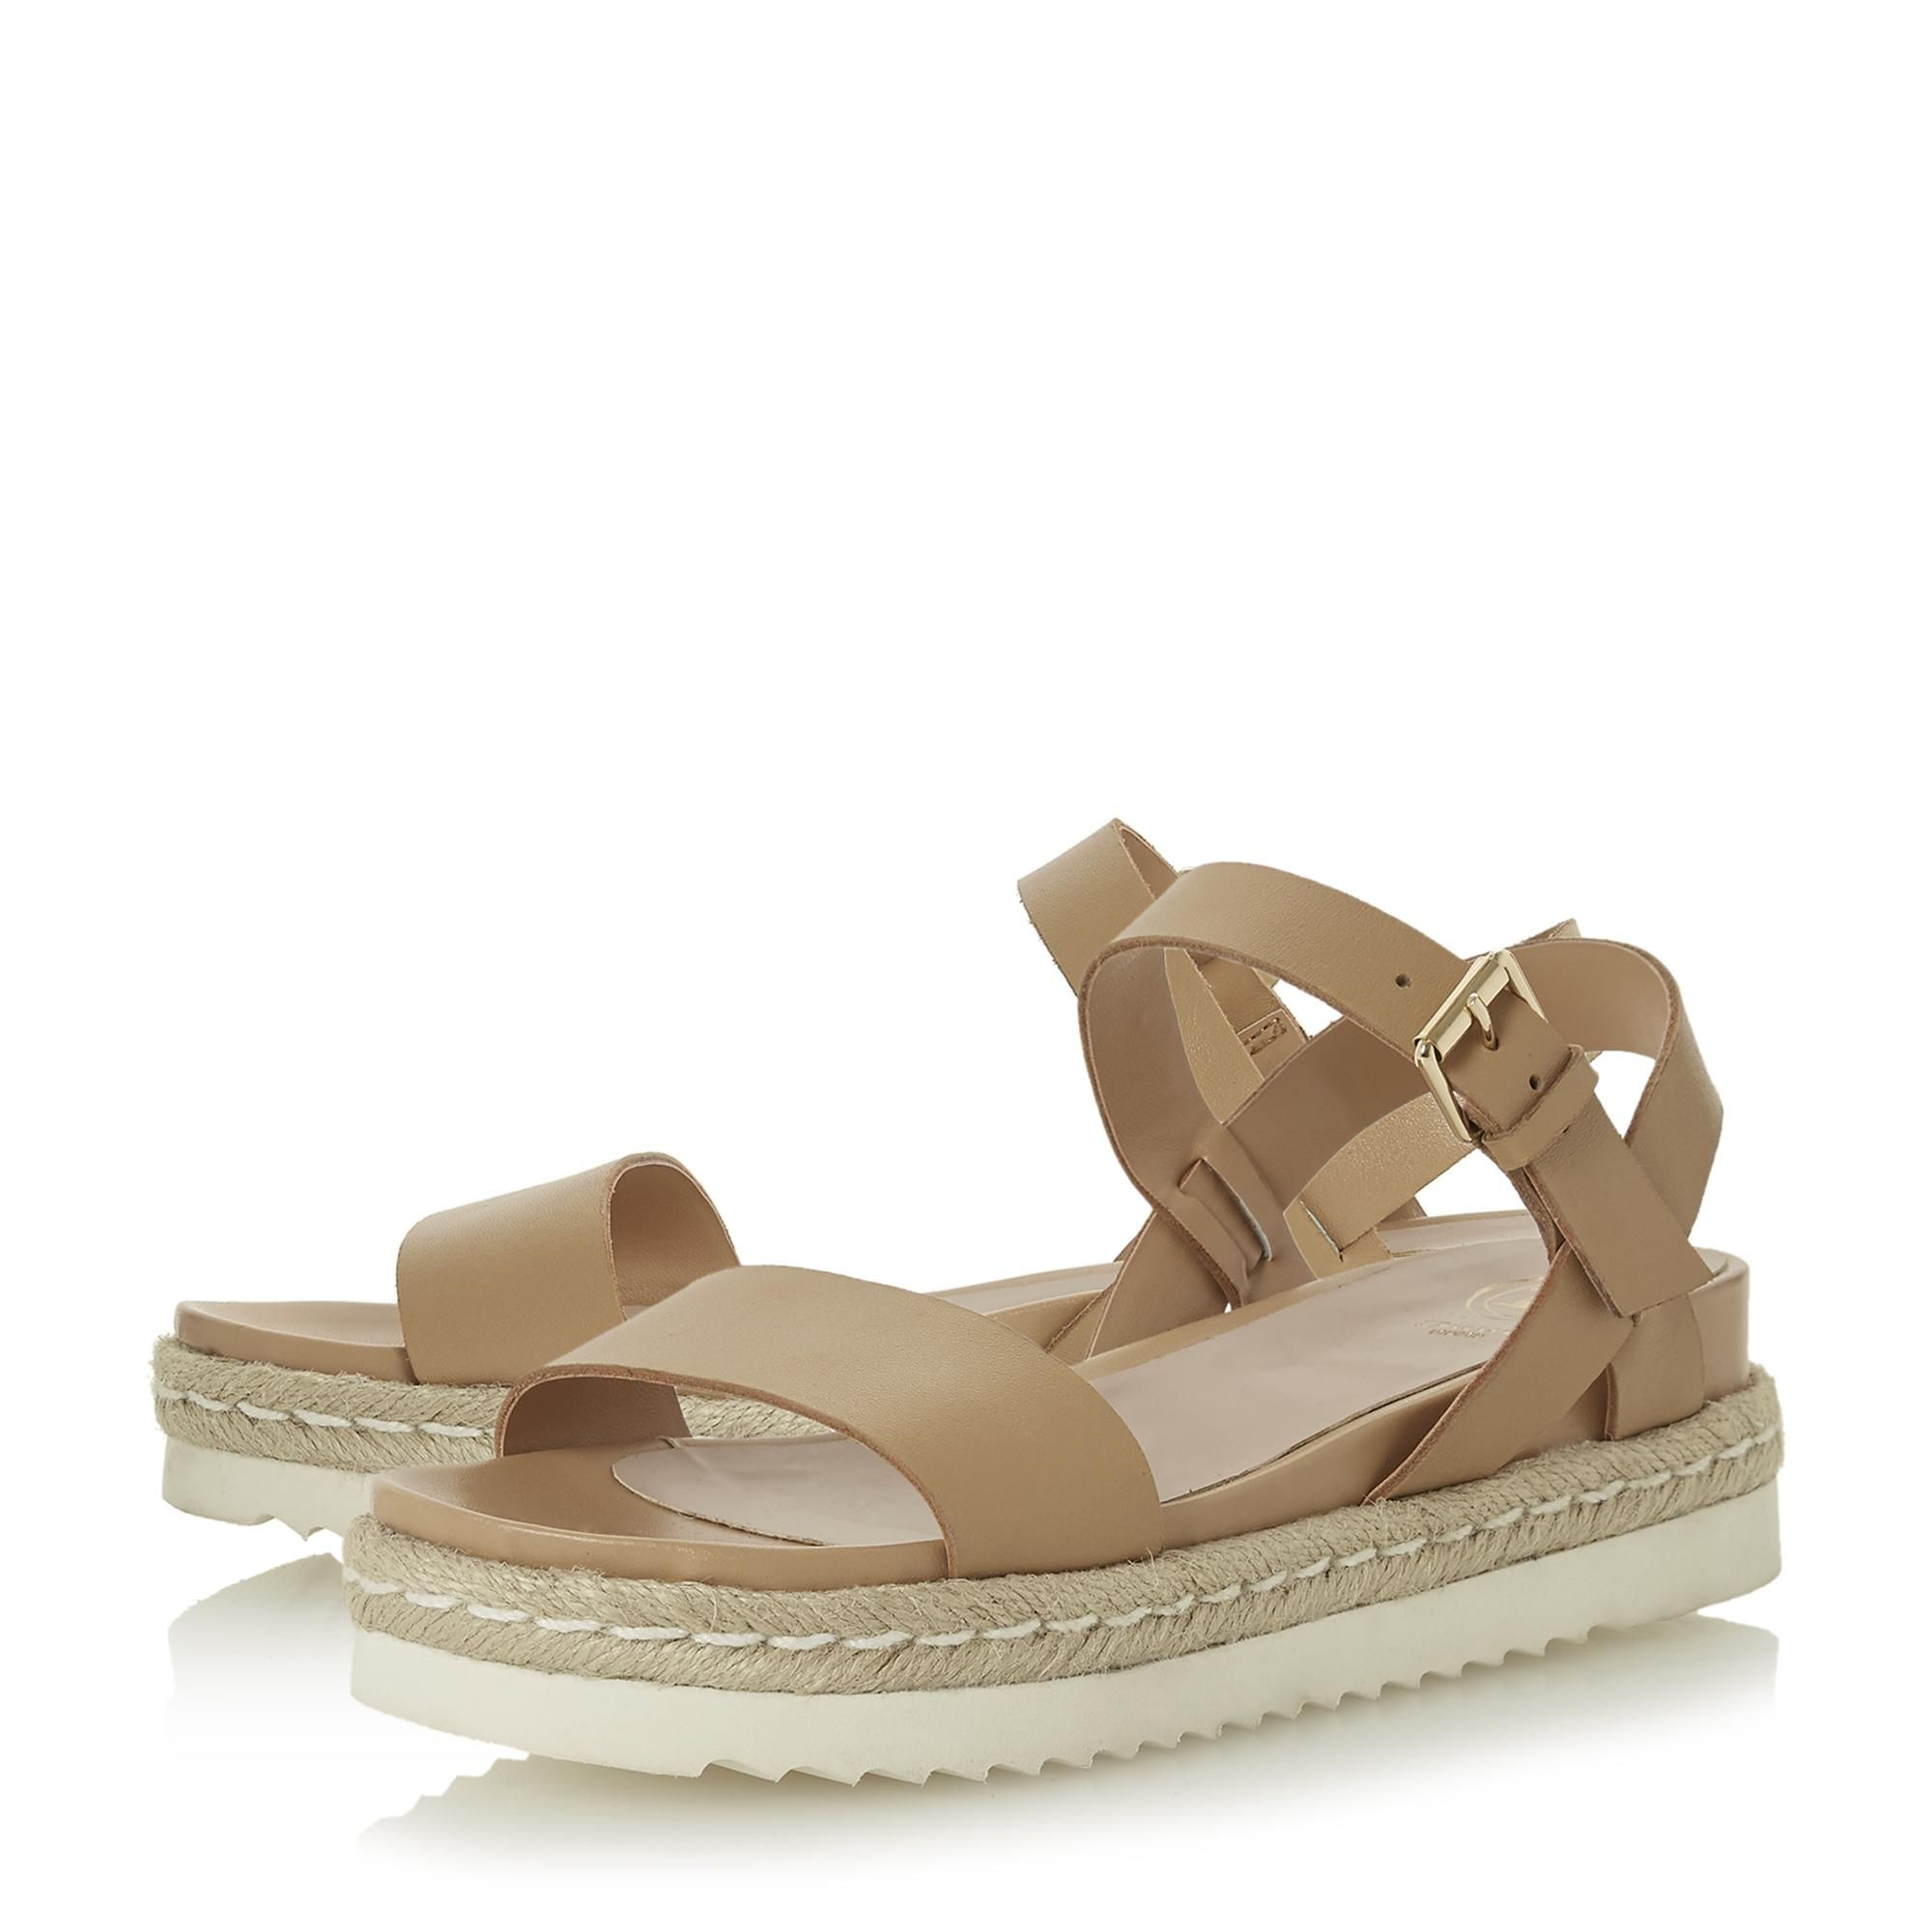 Dune Ladies LISSY Two Part Espadrille Wedge Sandals